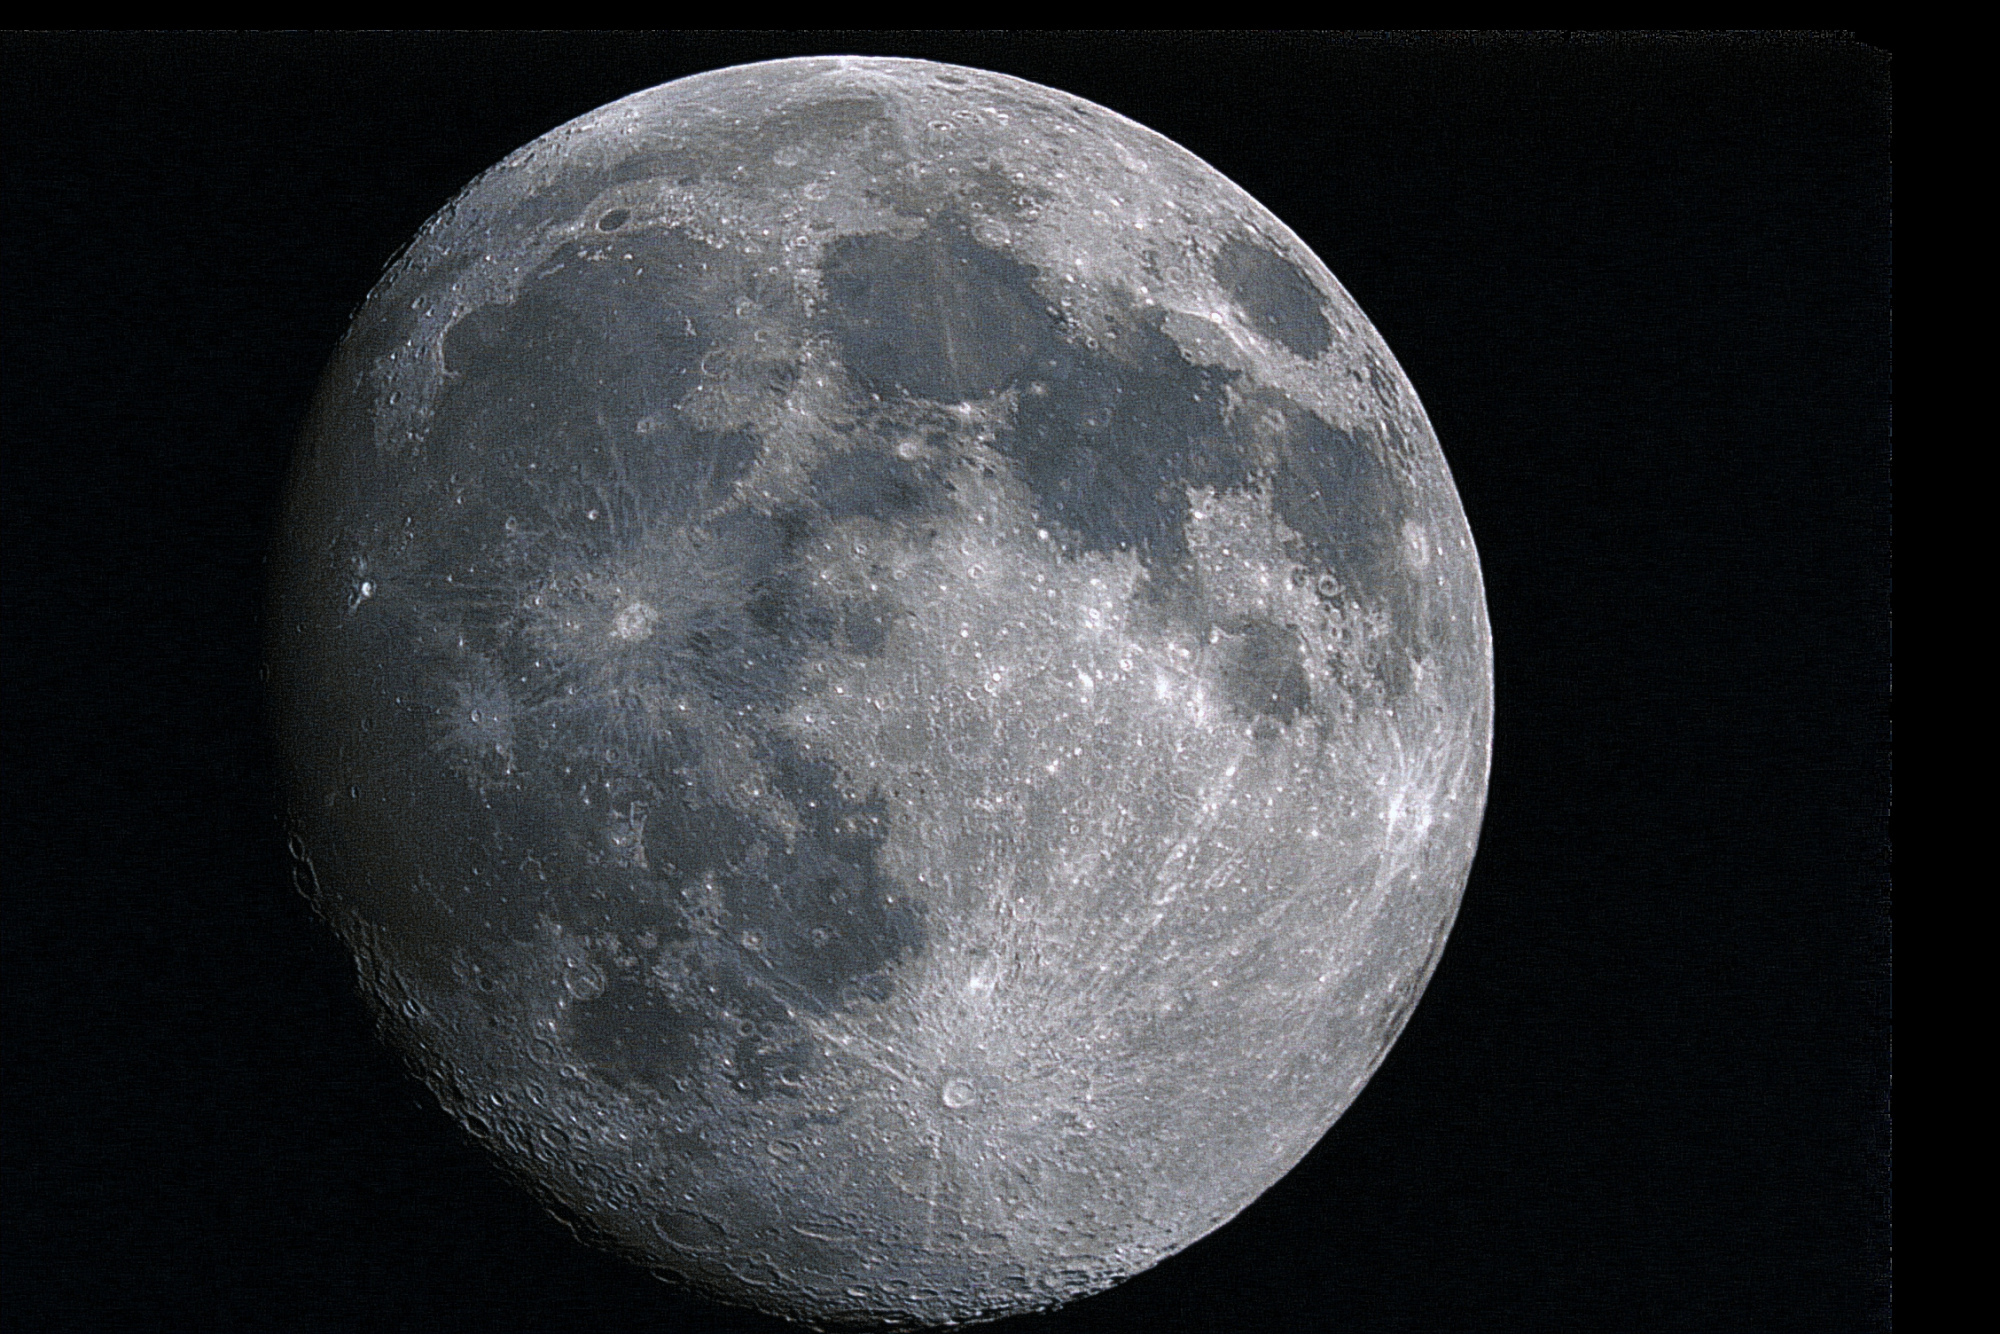 LUNE_02_AS3_CS2_SIRIL_CS2.thumb.jpg.8833c2c6bfcf4e9d05e4a658be81b827.jpg